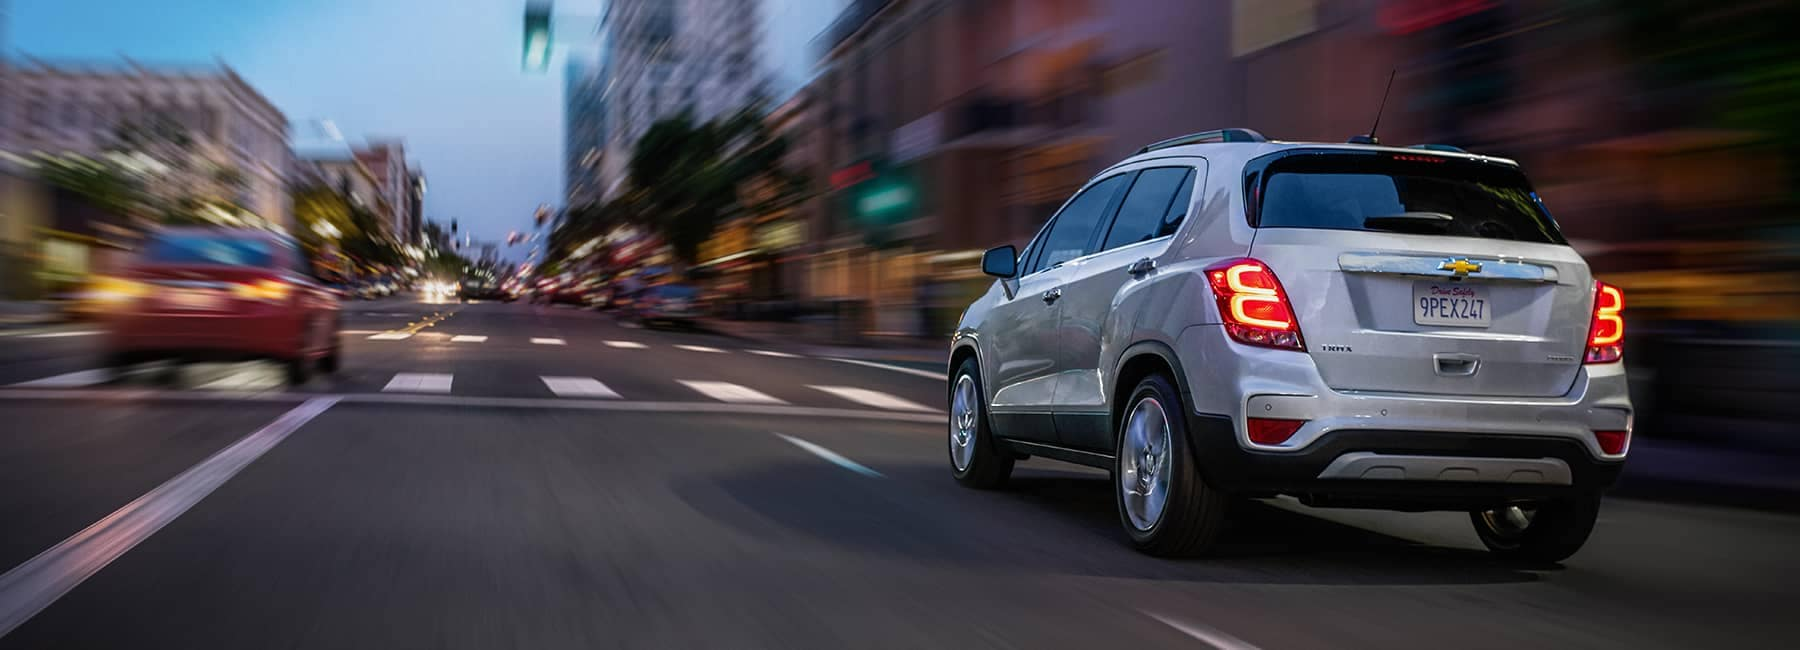 Silver 2020 Chevrolet Trax Driving on a City Rd_mobile